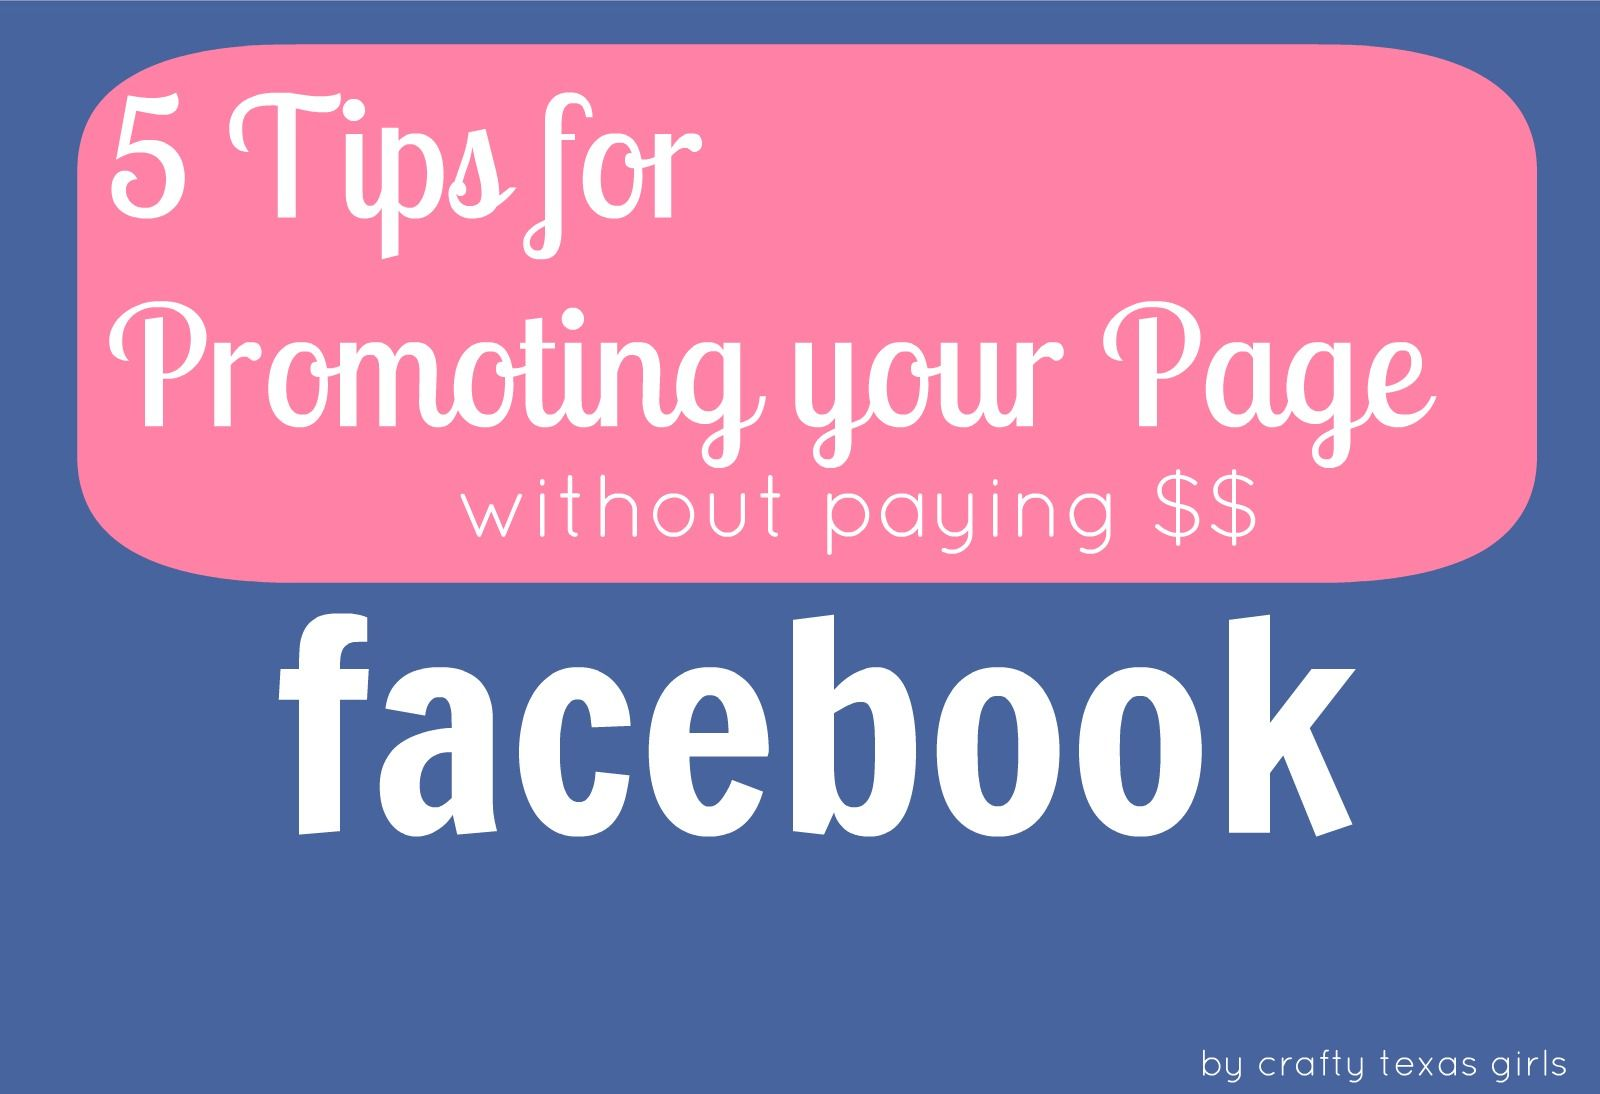 5 Tips for Promoting Your FB page without paying $$